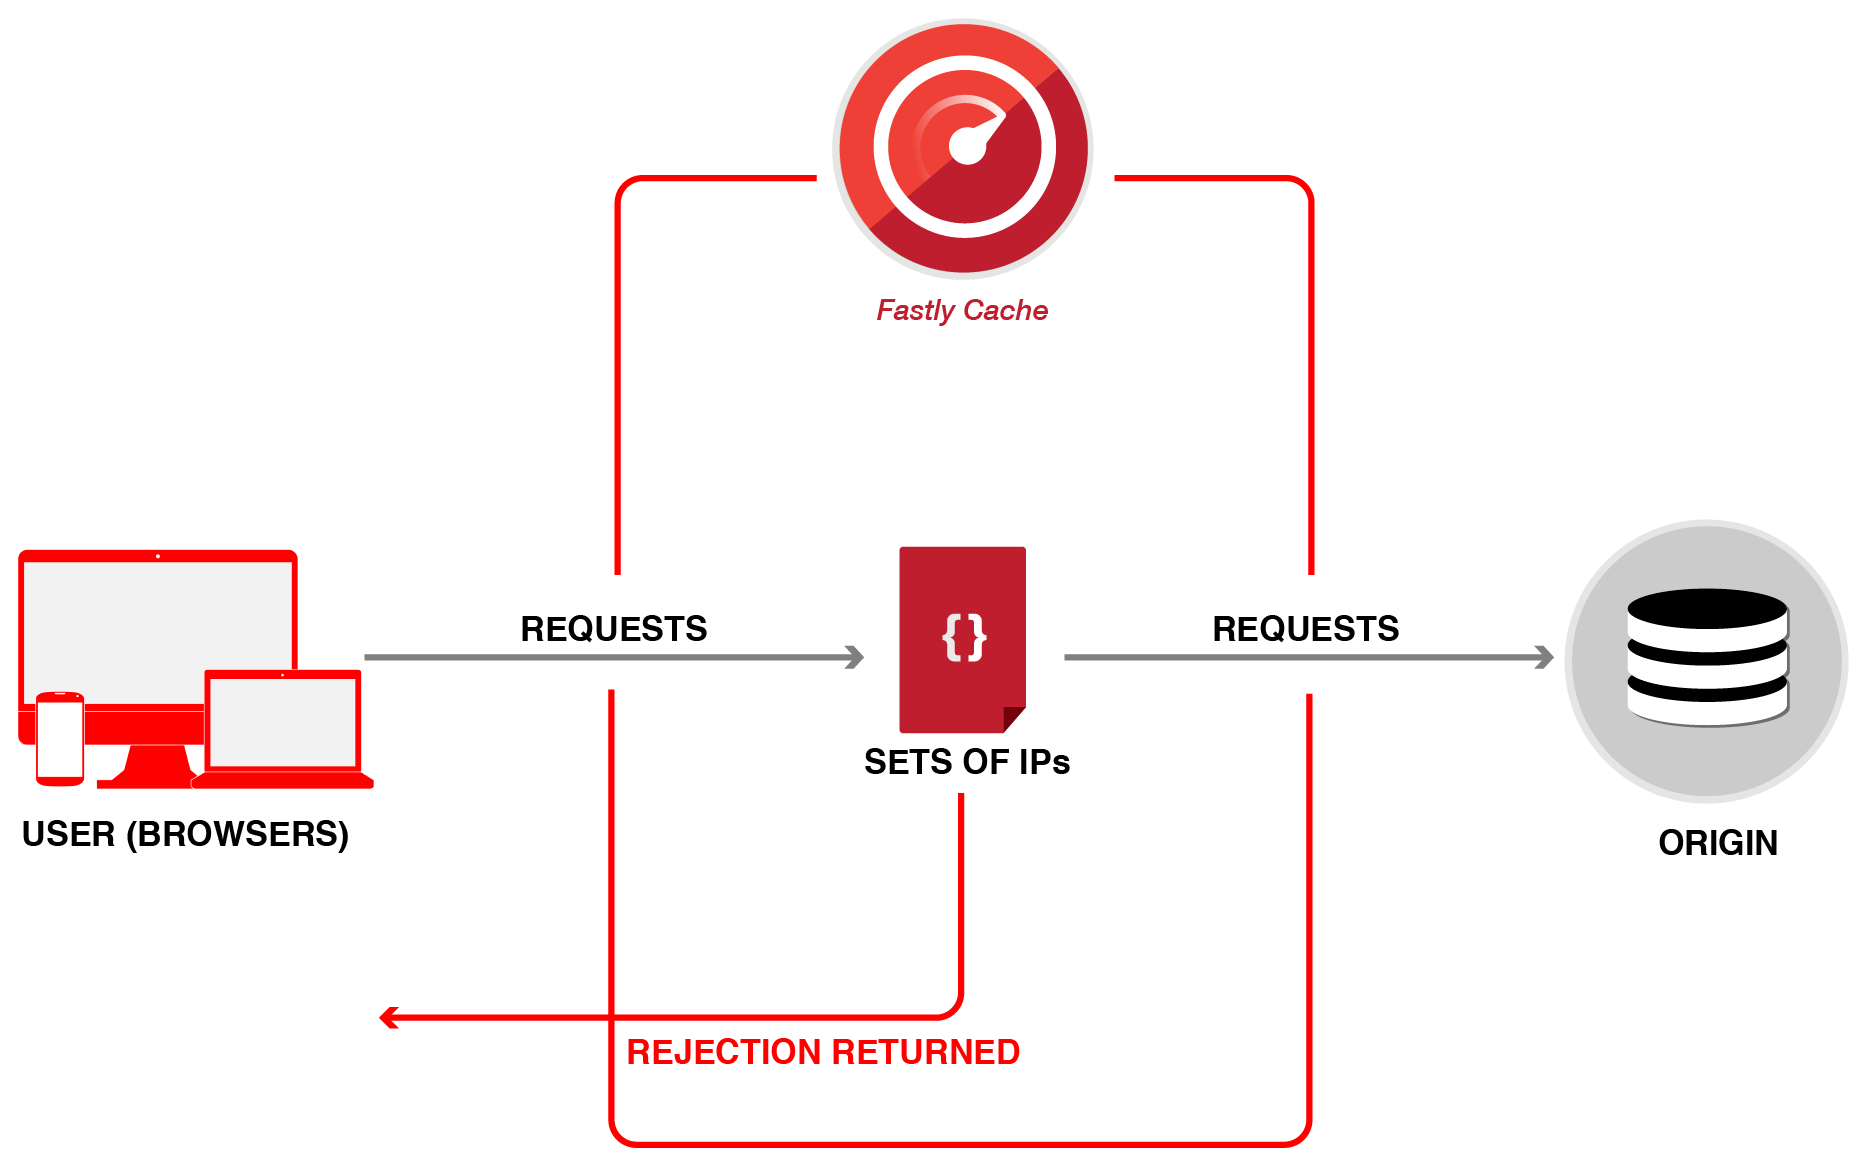 restricting access diagram 2-03